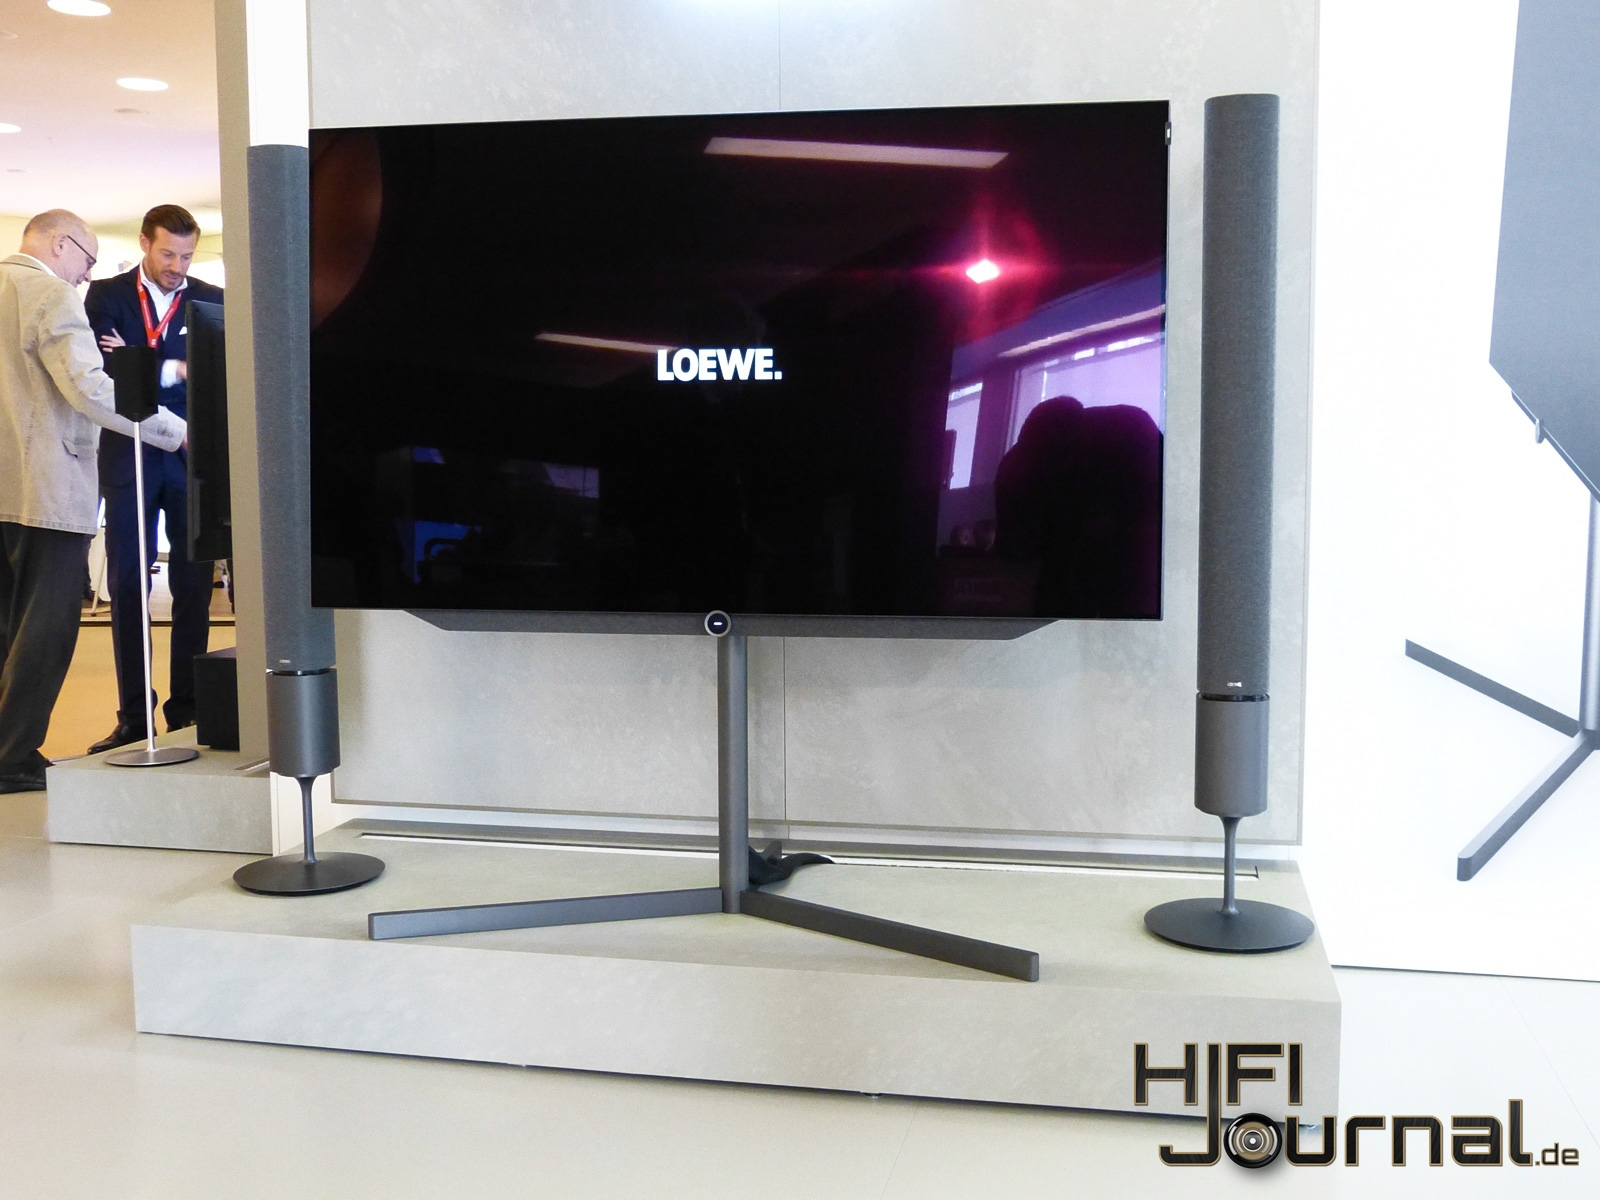 Bild Bild Bild Loewe Bild 7 Im Hands On Video Hifi Journal